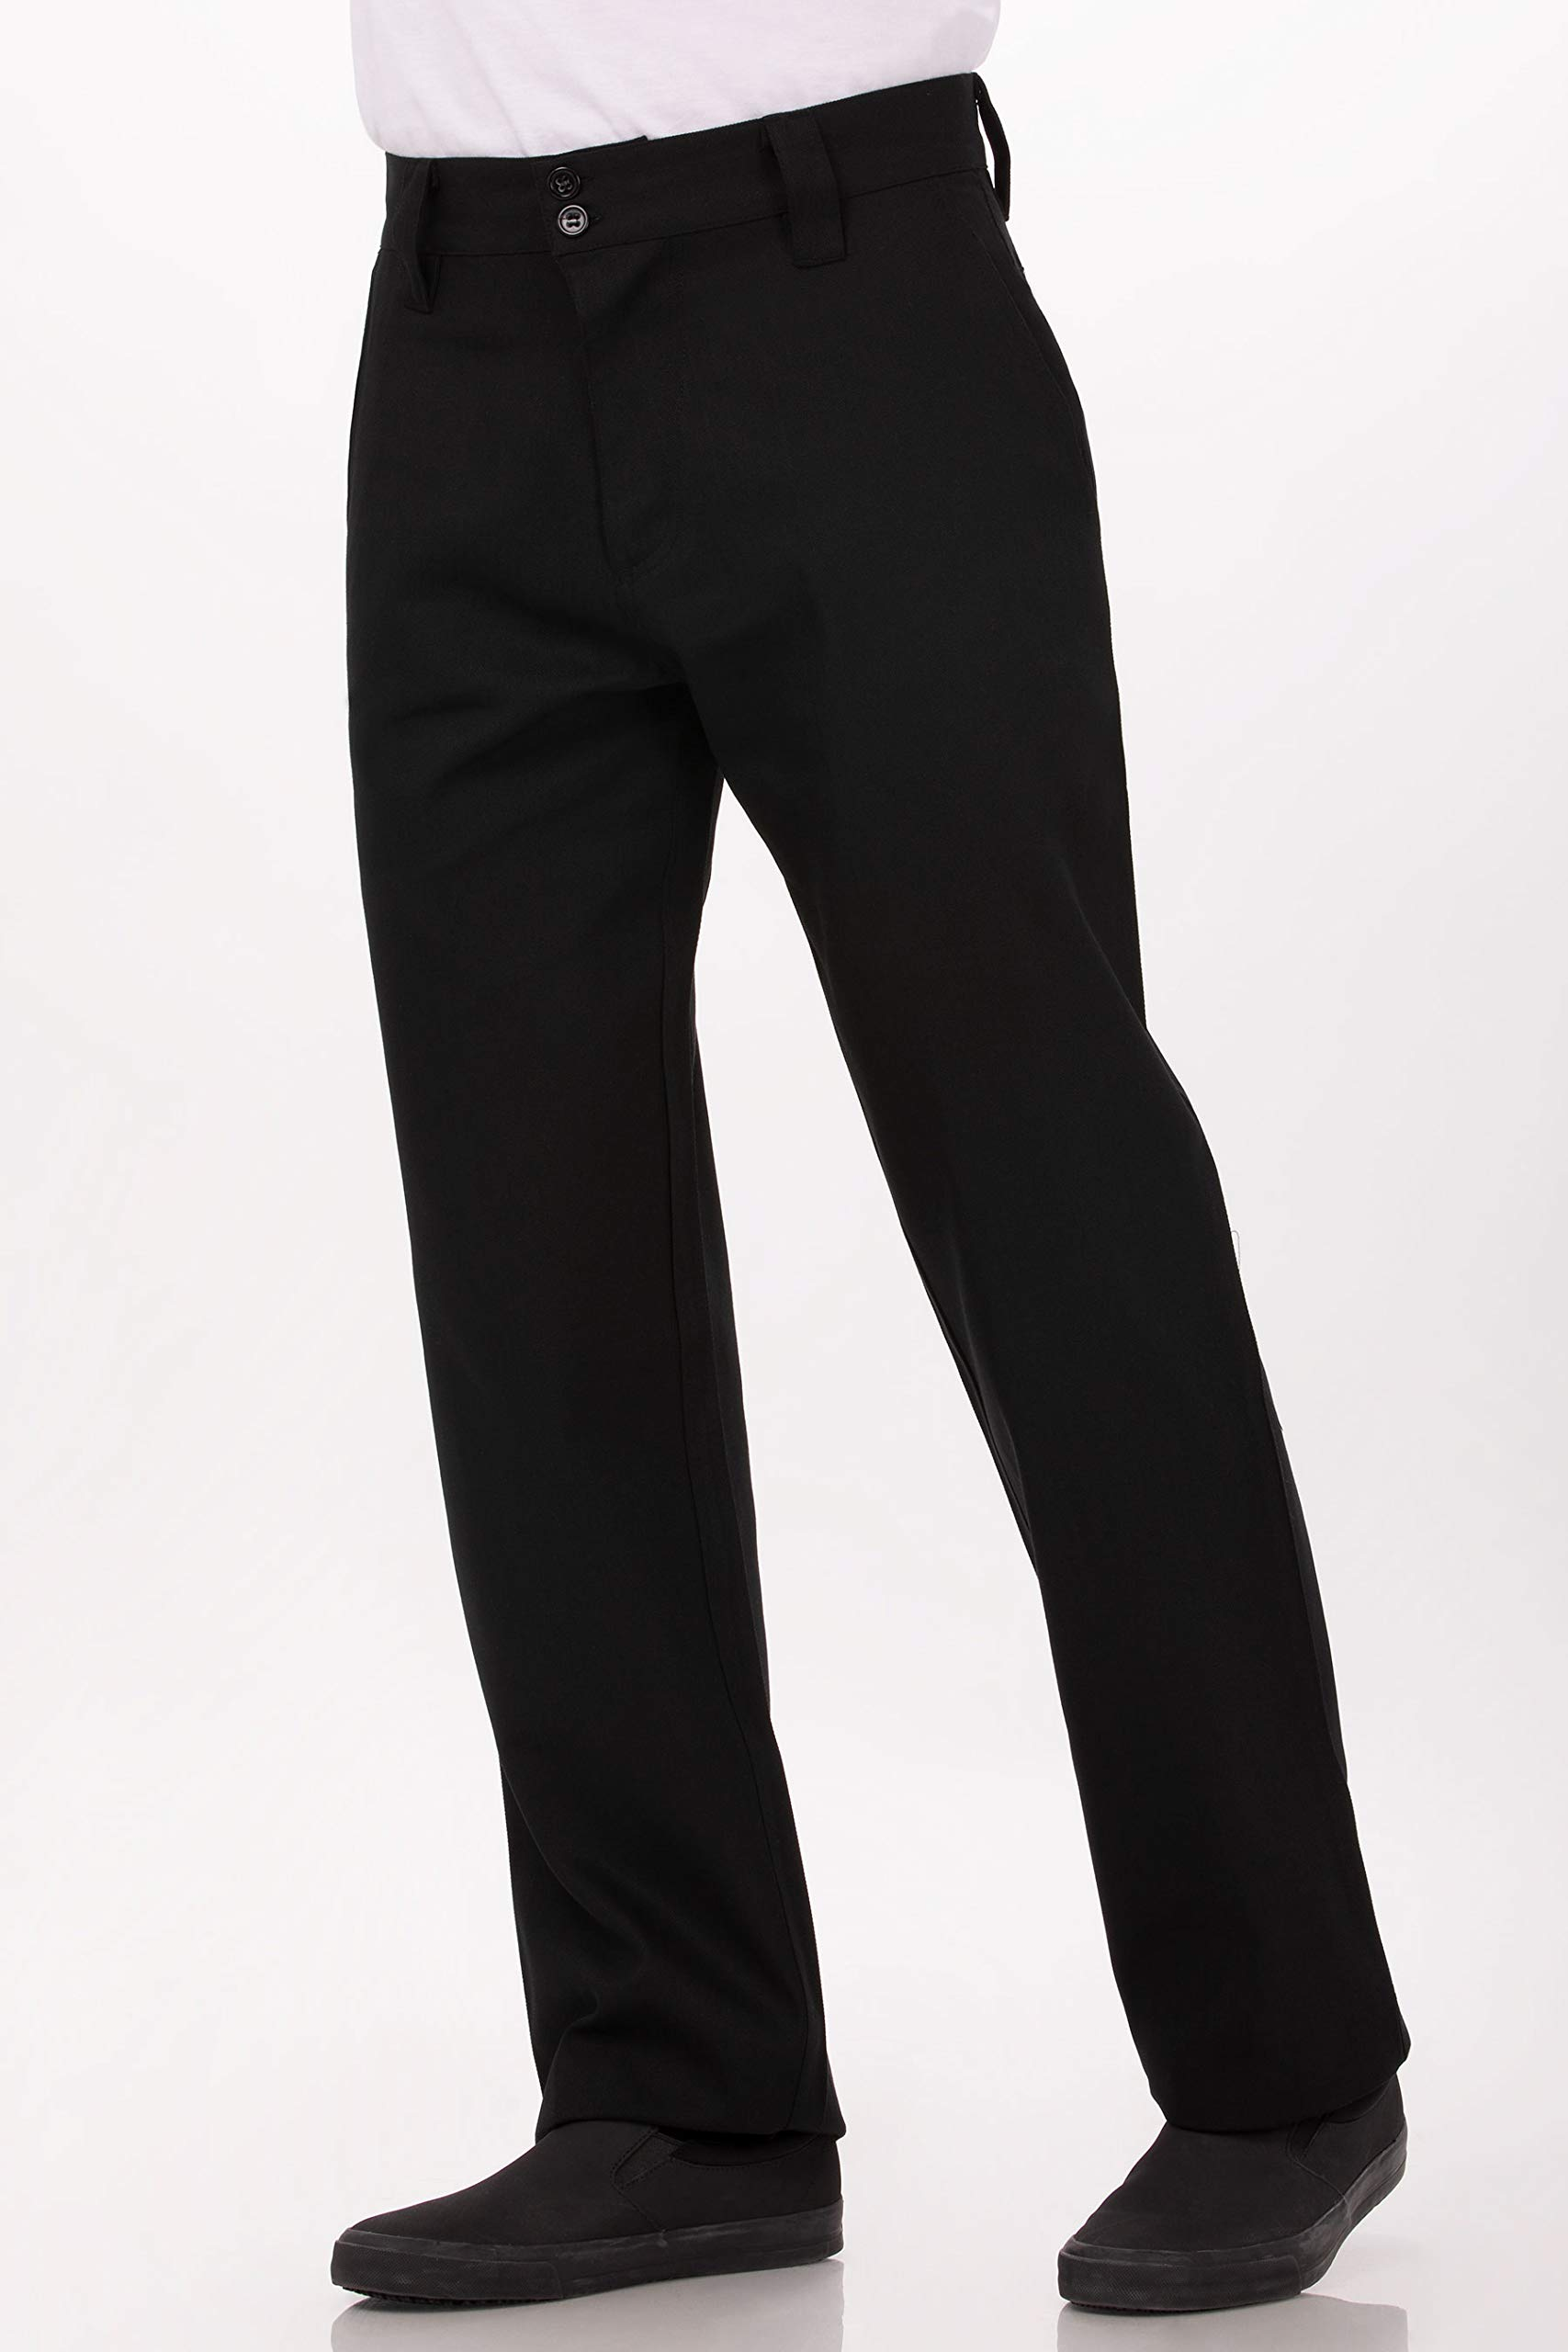 Chef Works Men's Essential Pro Chef Pants, Black, 36 by Chef Works